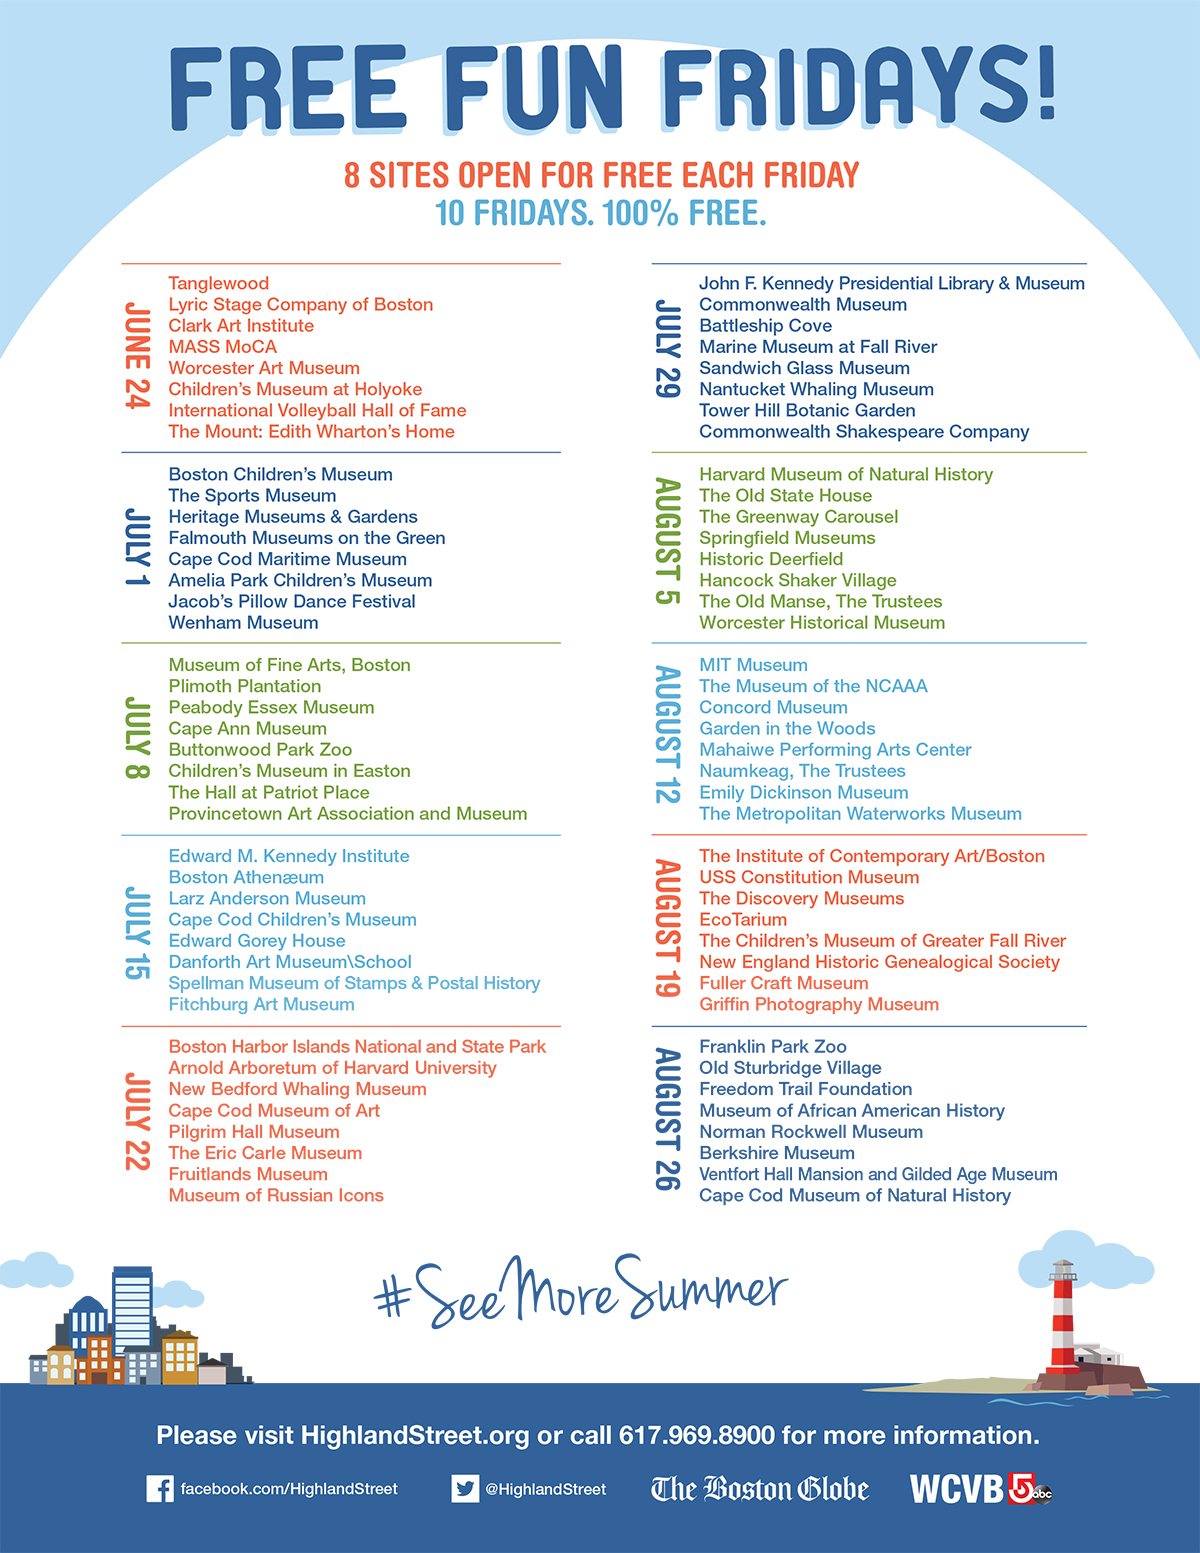 free fun fridays 2016 schedule boston lineup